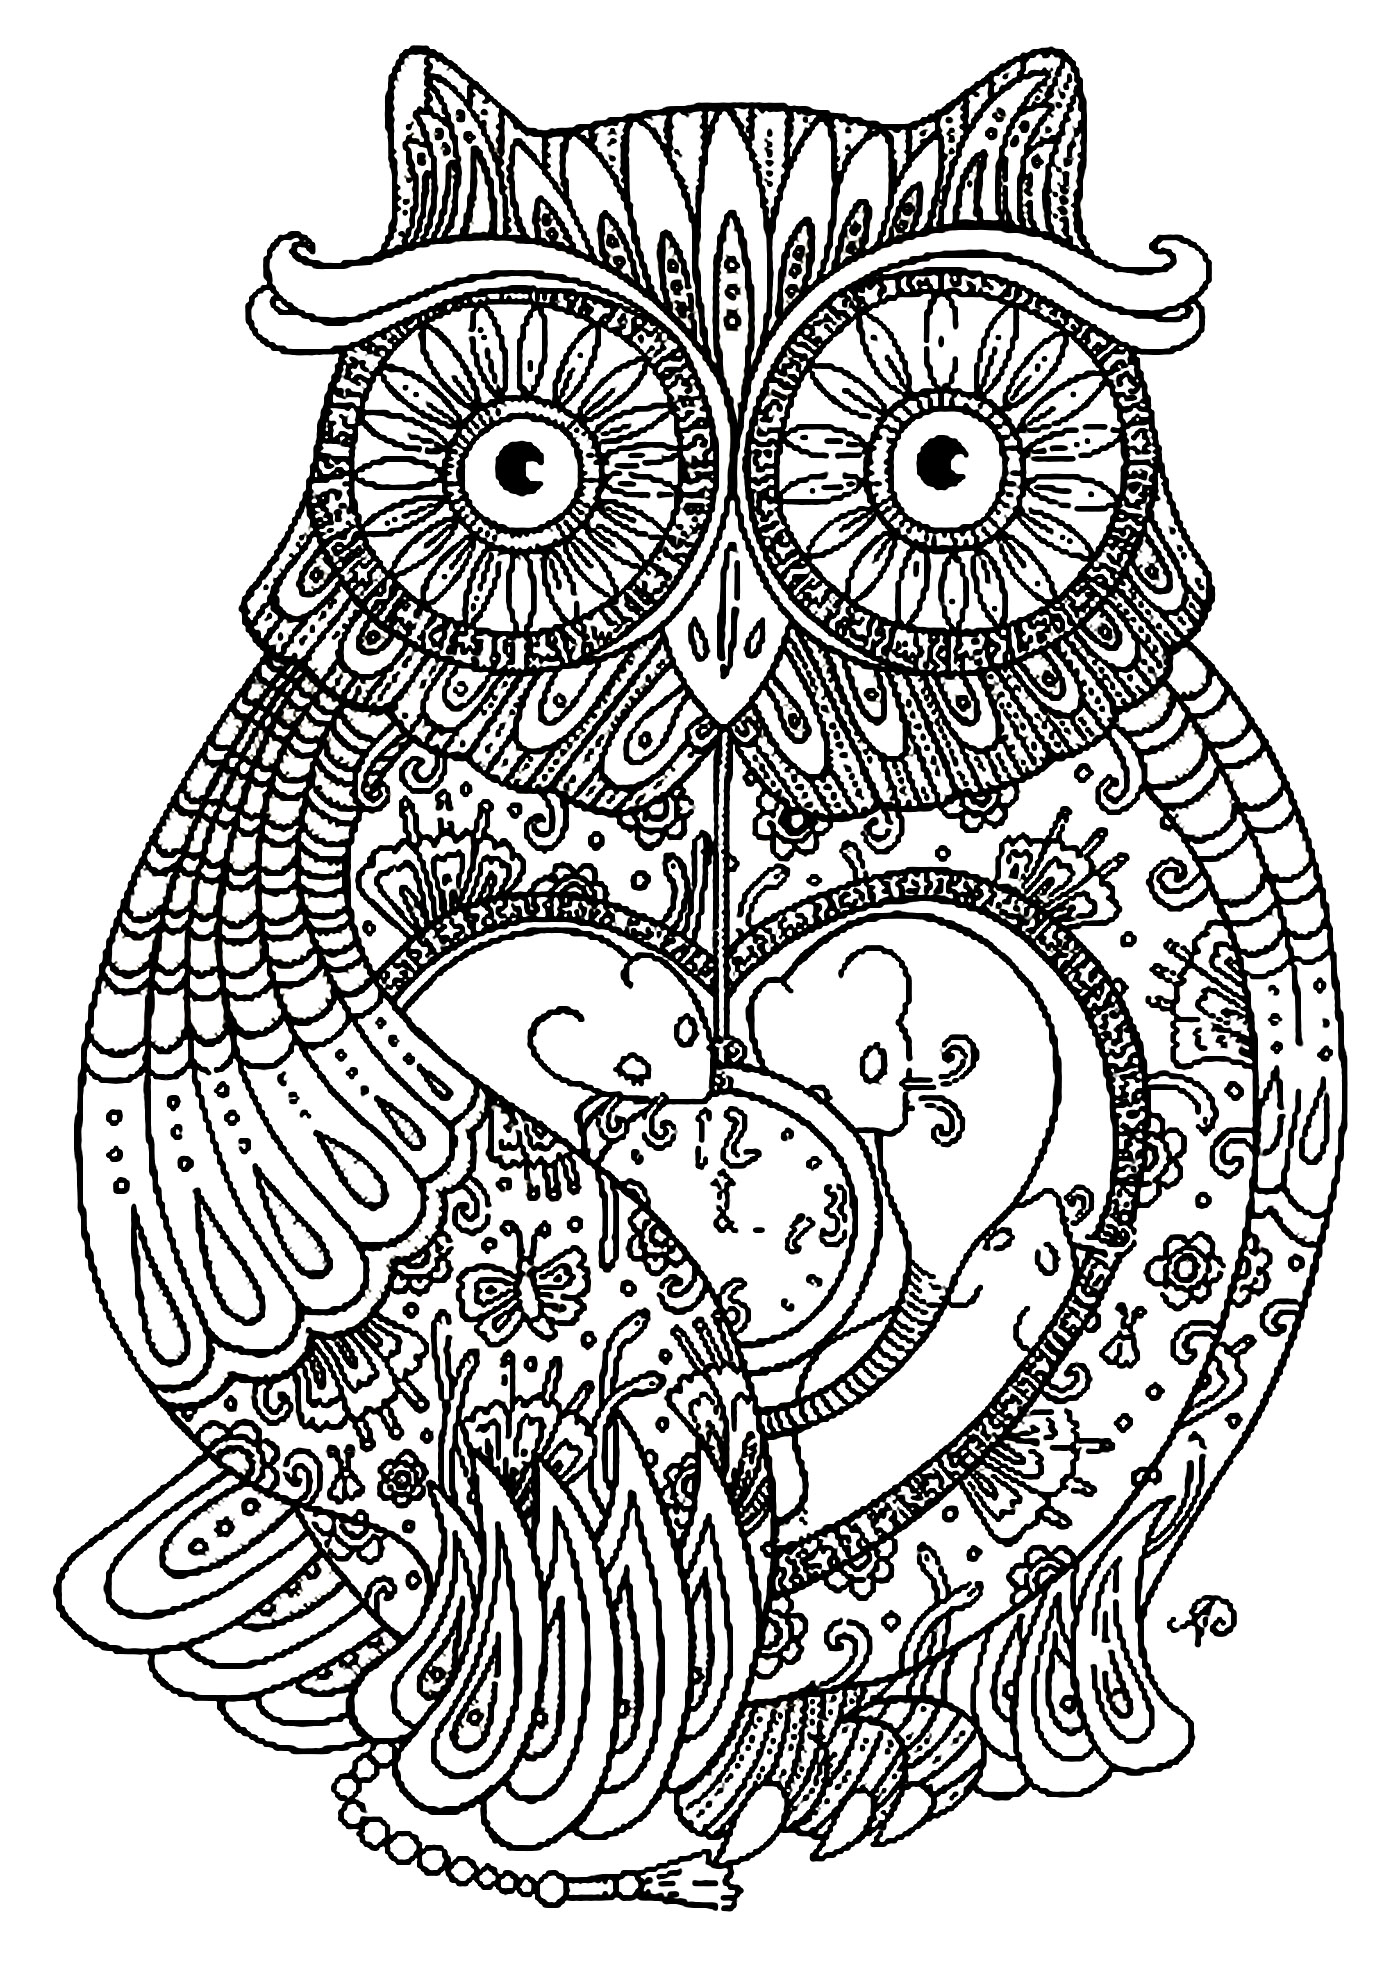 Big Owl Owls Coloring Pages For Adults Justcolor